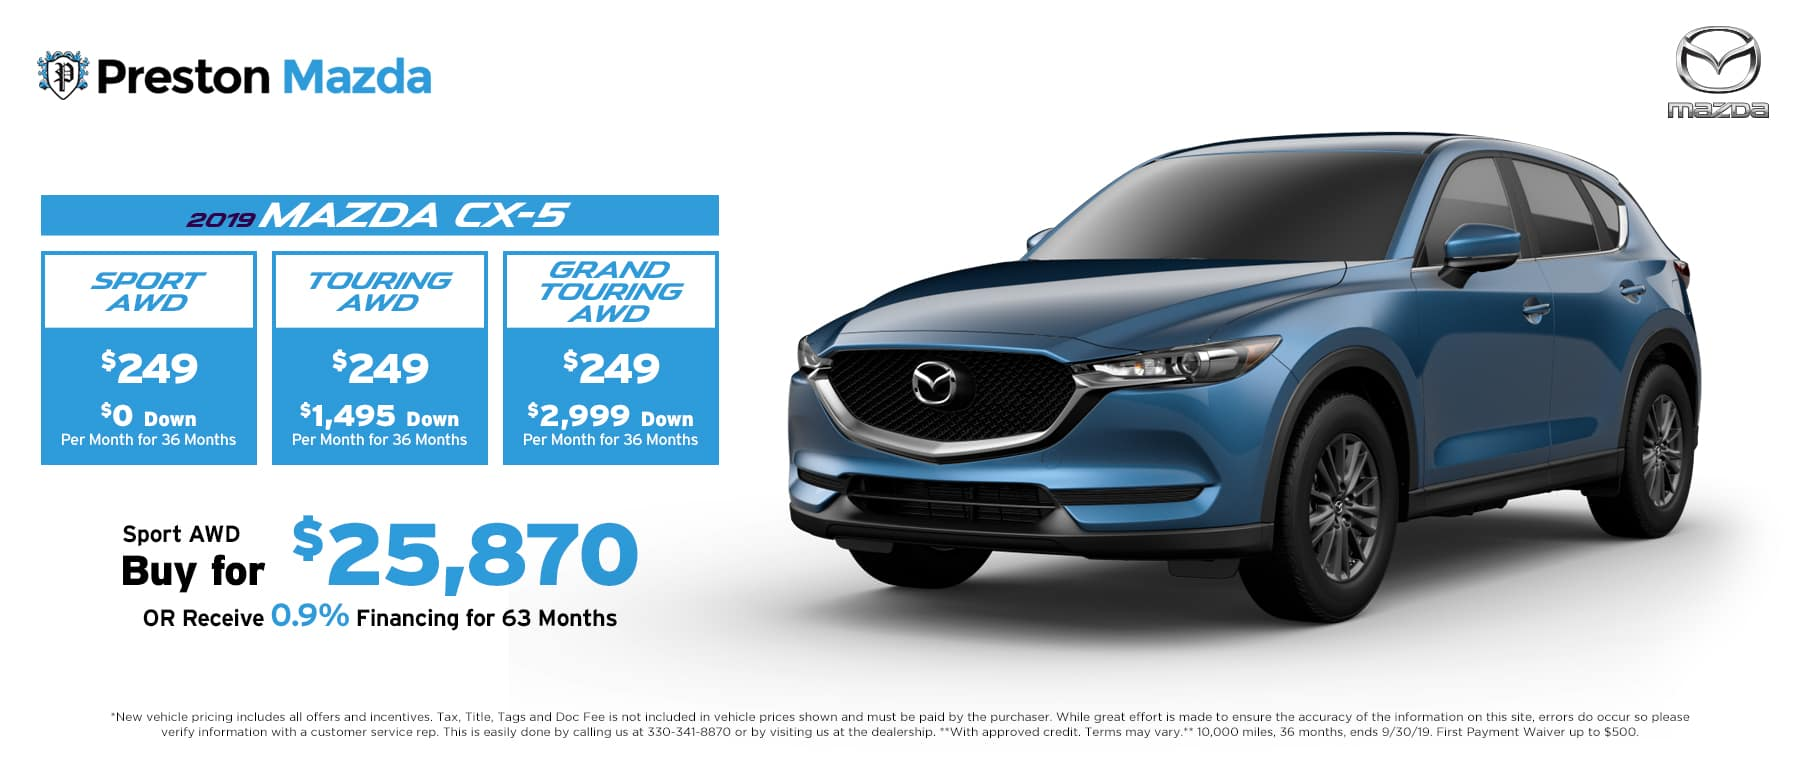 September special on the 2019 Mazda CX-5